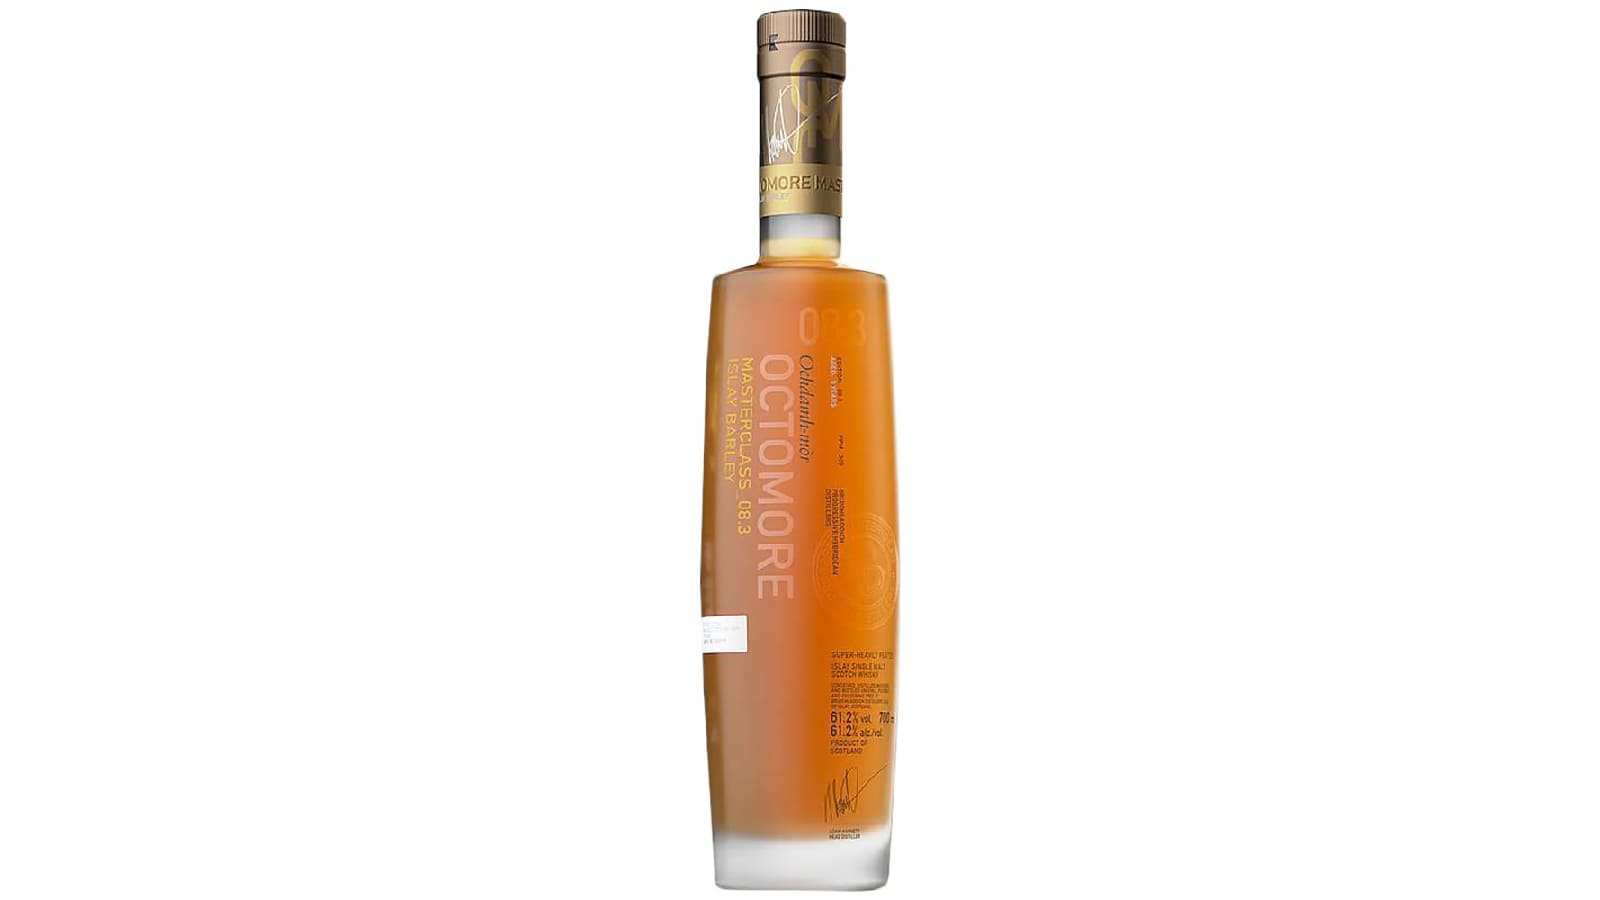 Bruichladdich Octomore 08.3 5 Years Old